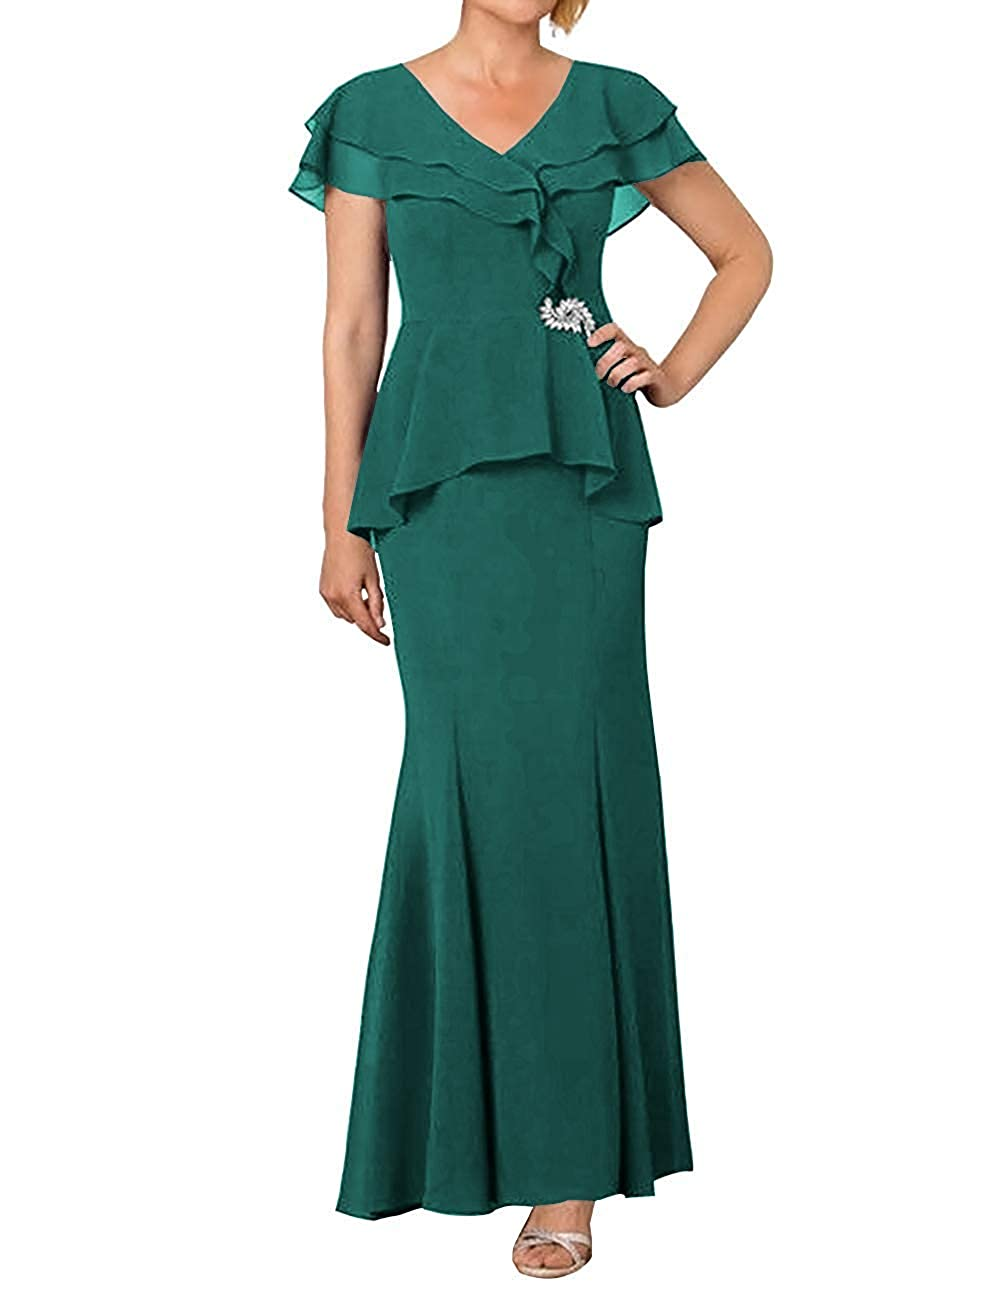 Peacock ZLQQ Womens Mother of The Bride Dress 2019 Cap Sleeve V Neck Formal Evening Gown